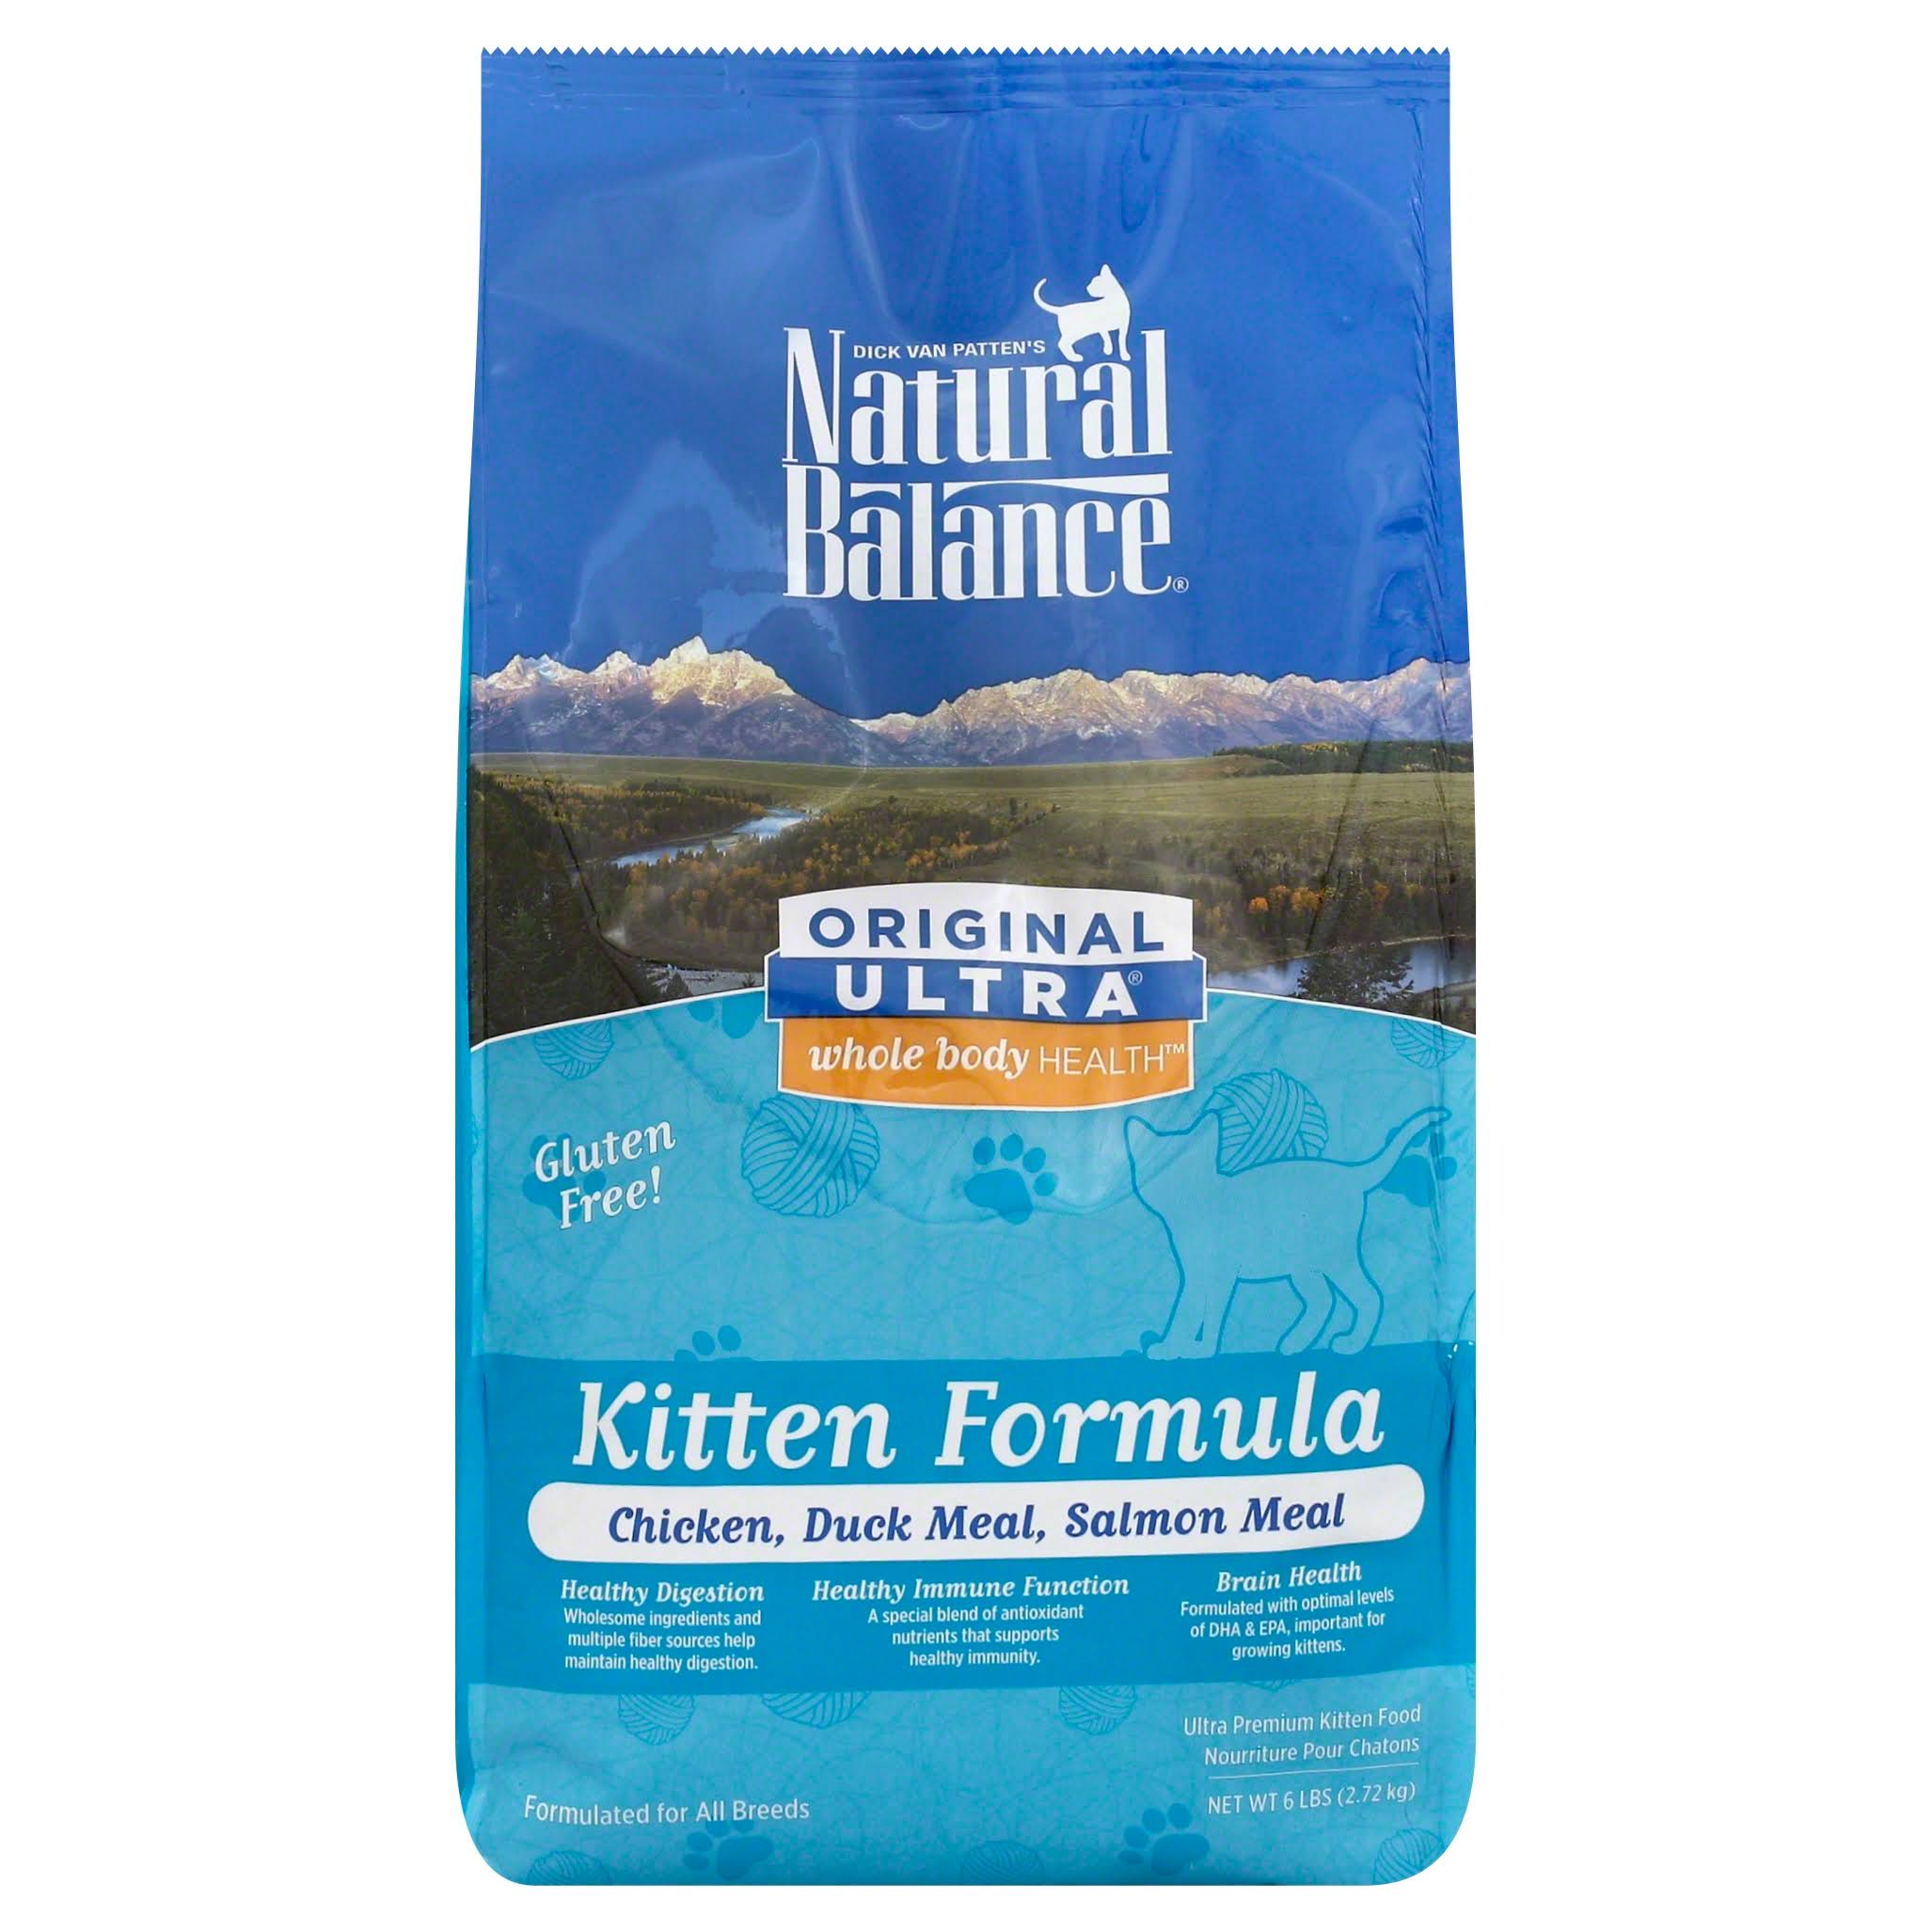 Natural Balance Kitten Formula Original Ultra Whole Body Health Dry Cat Food - Chicken, Duck Meal and Salmon Meal, 6lbs